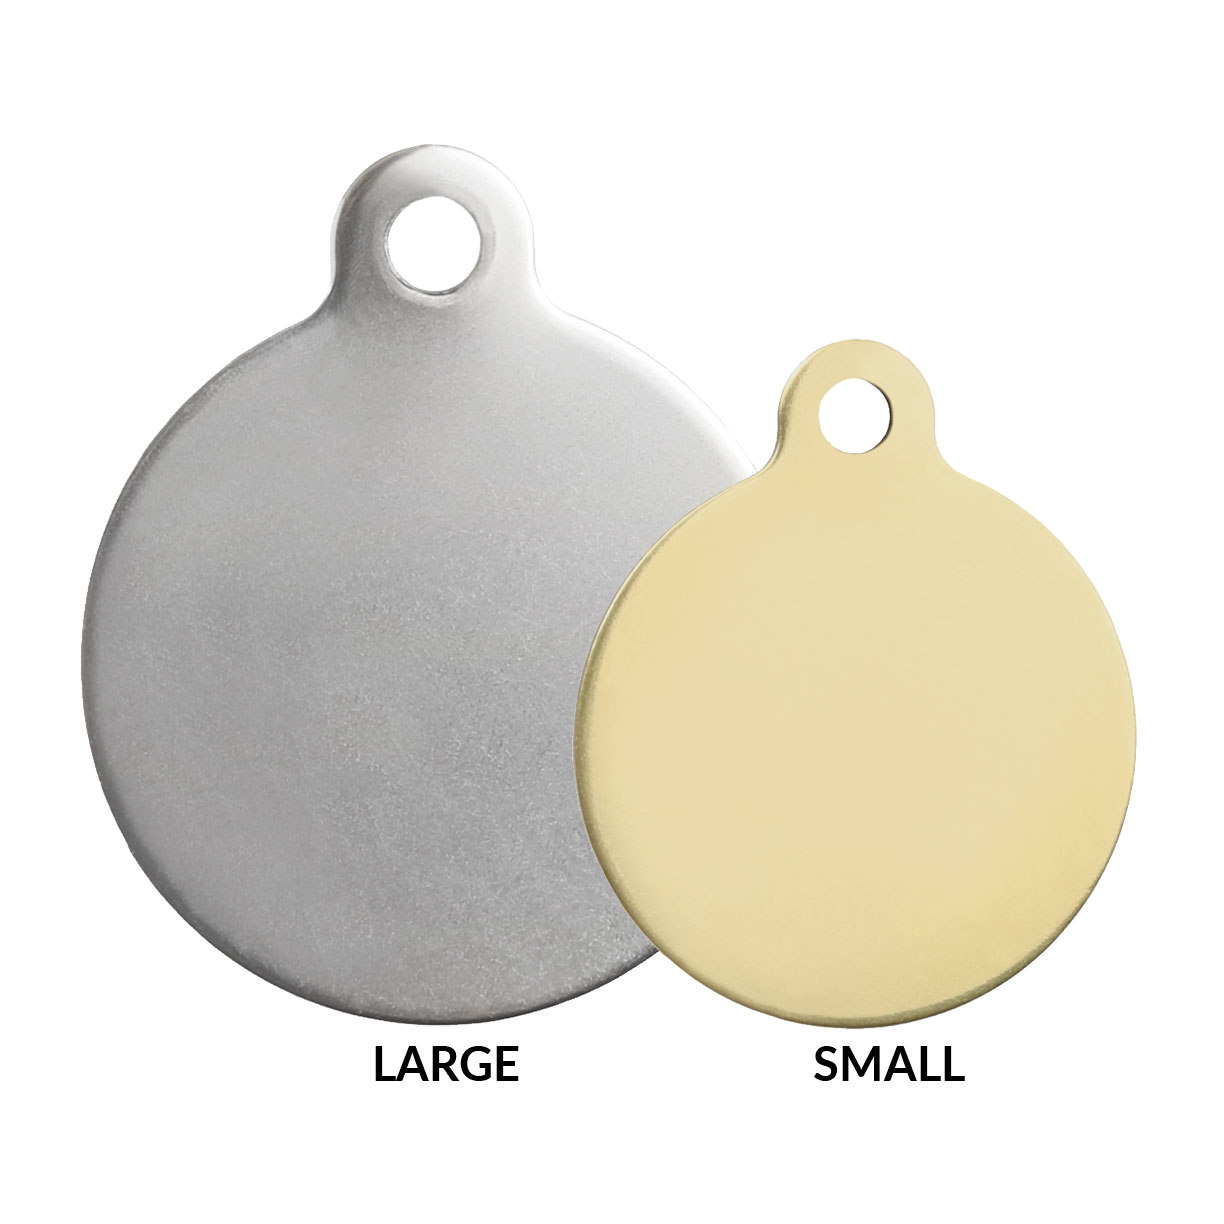 Round Tags Size Comparison